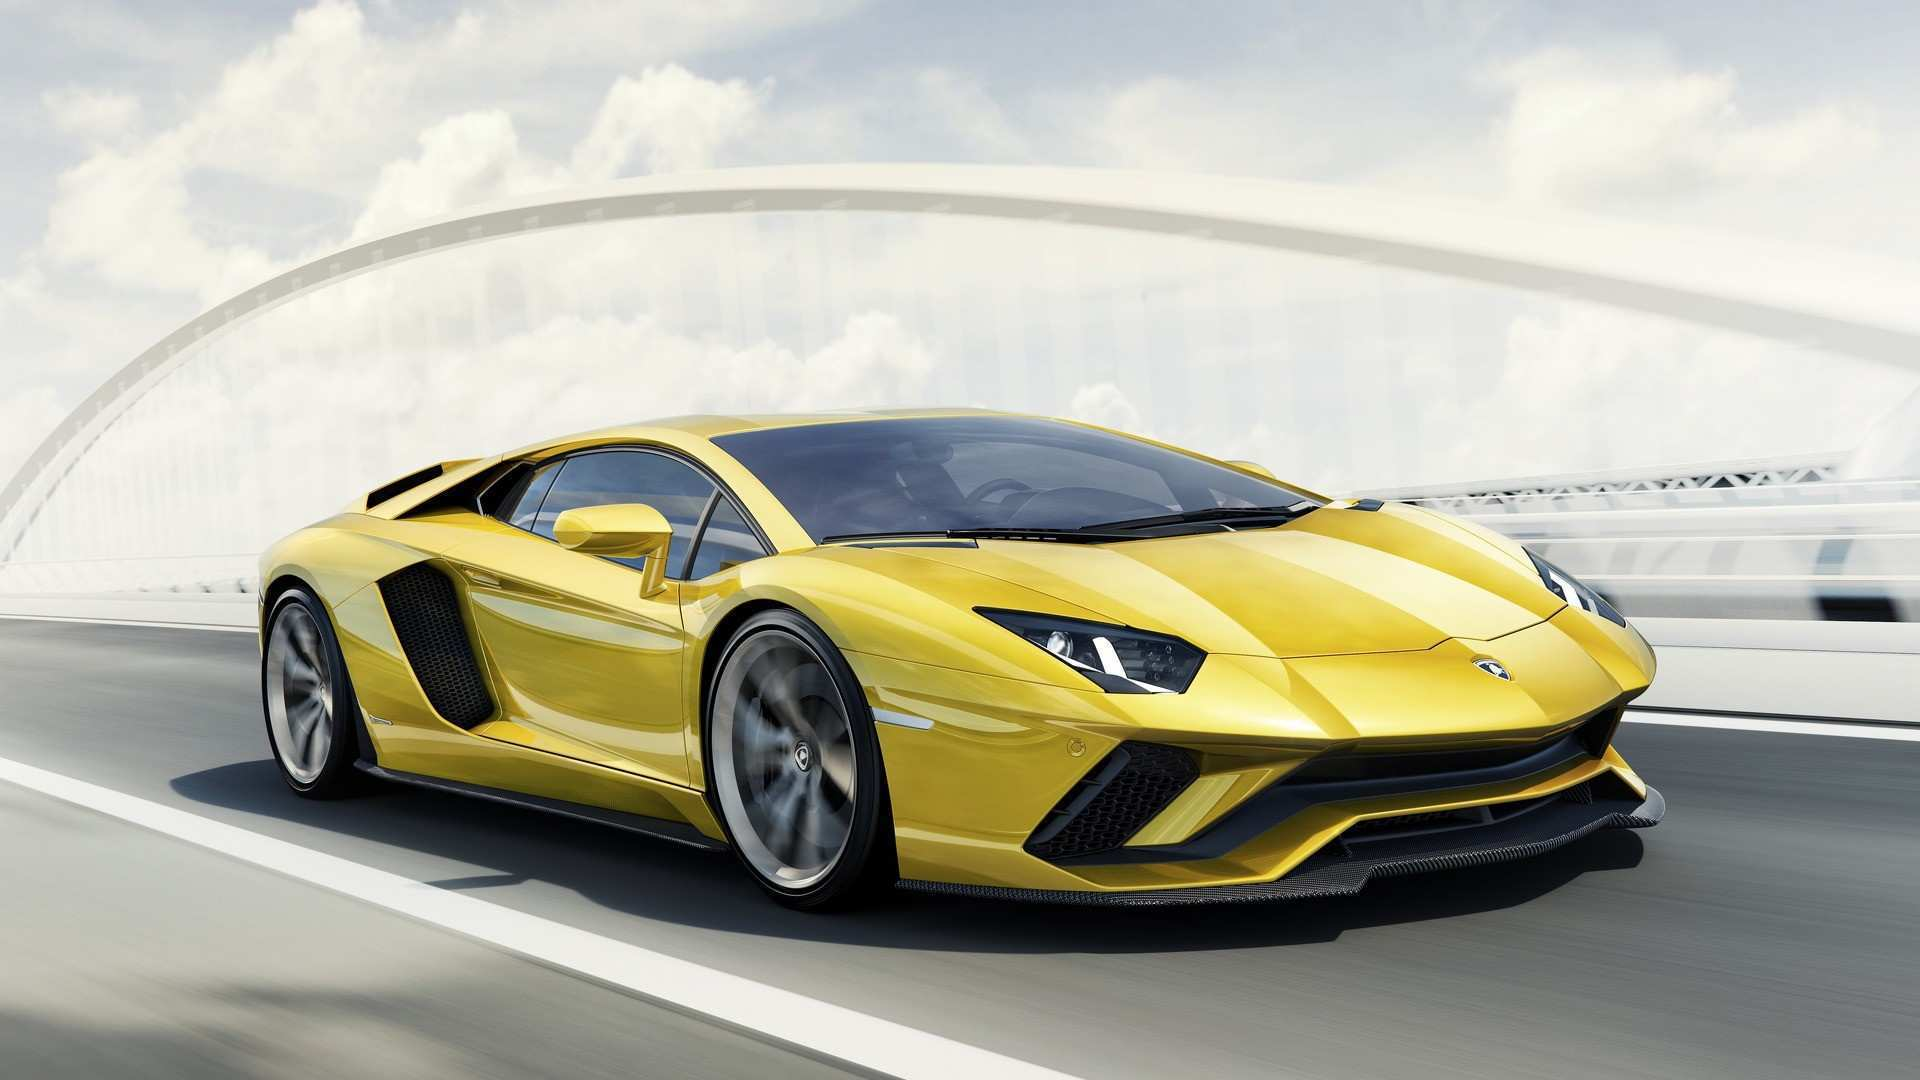 84 All New 2020 Lamborghini Aventador New Review